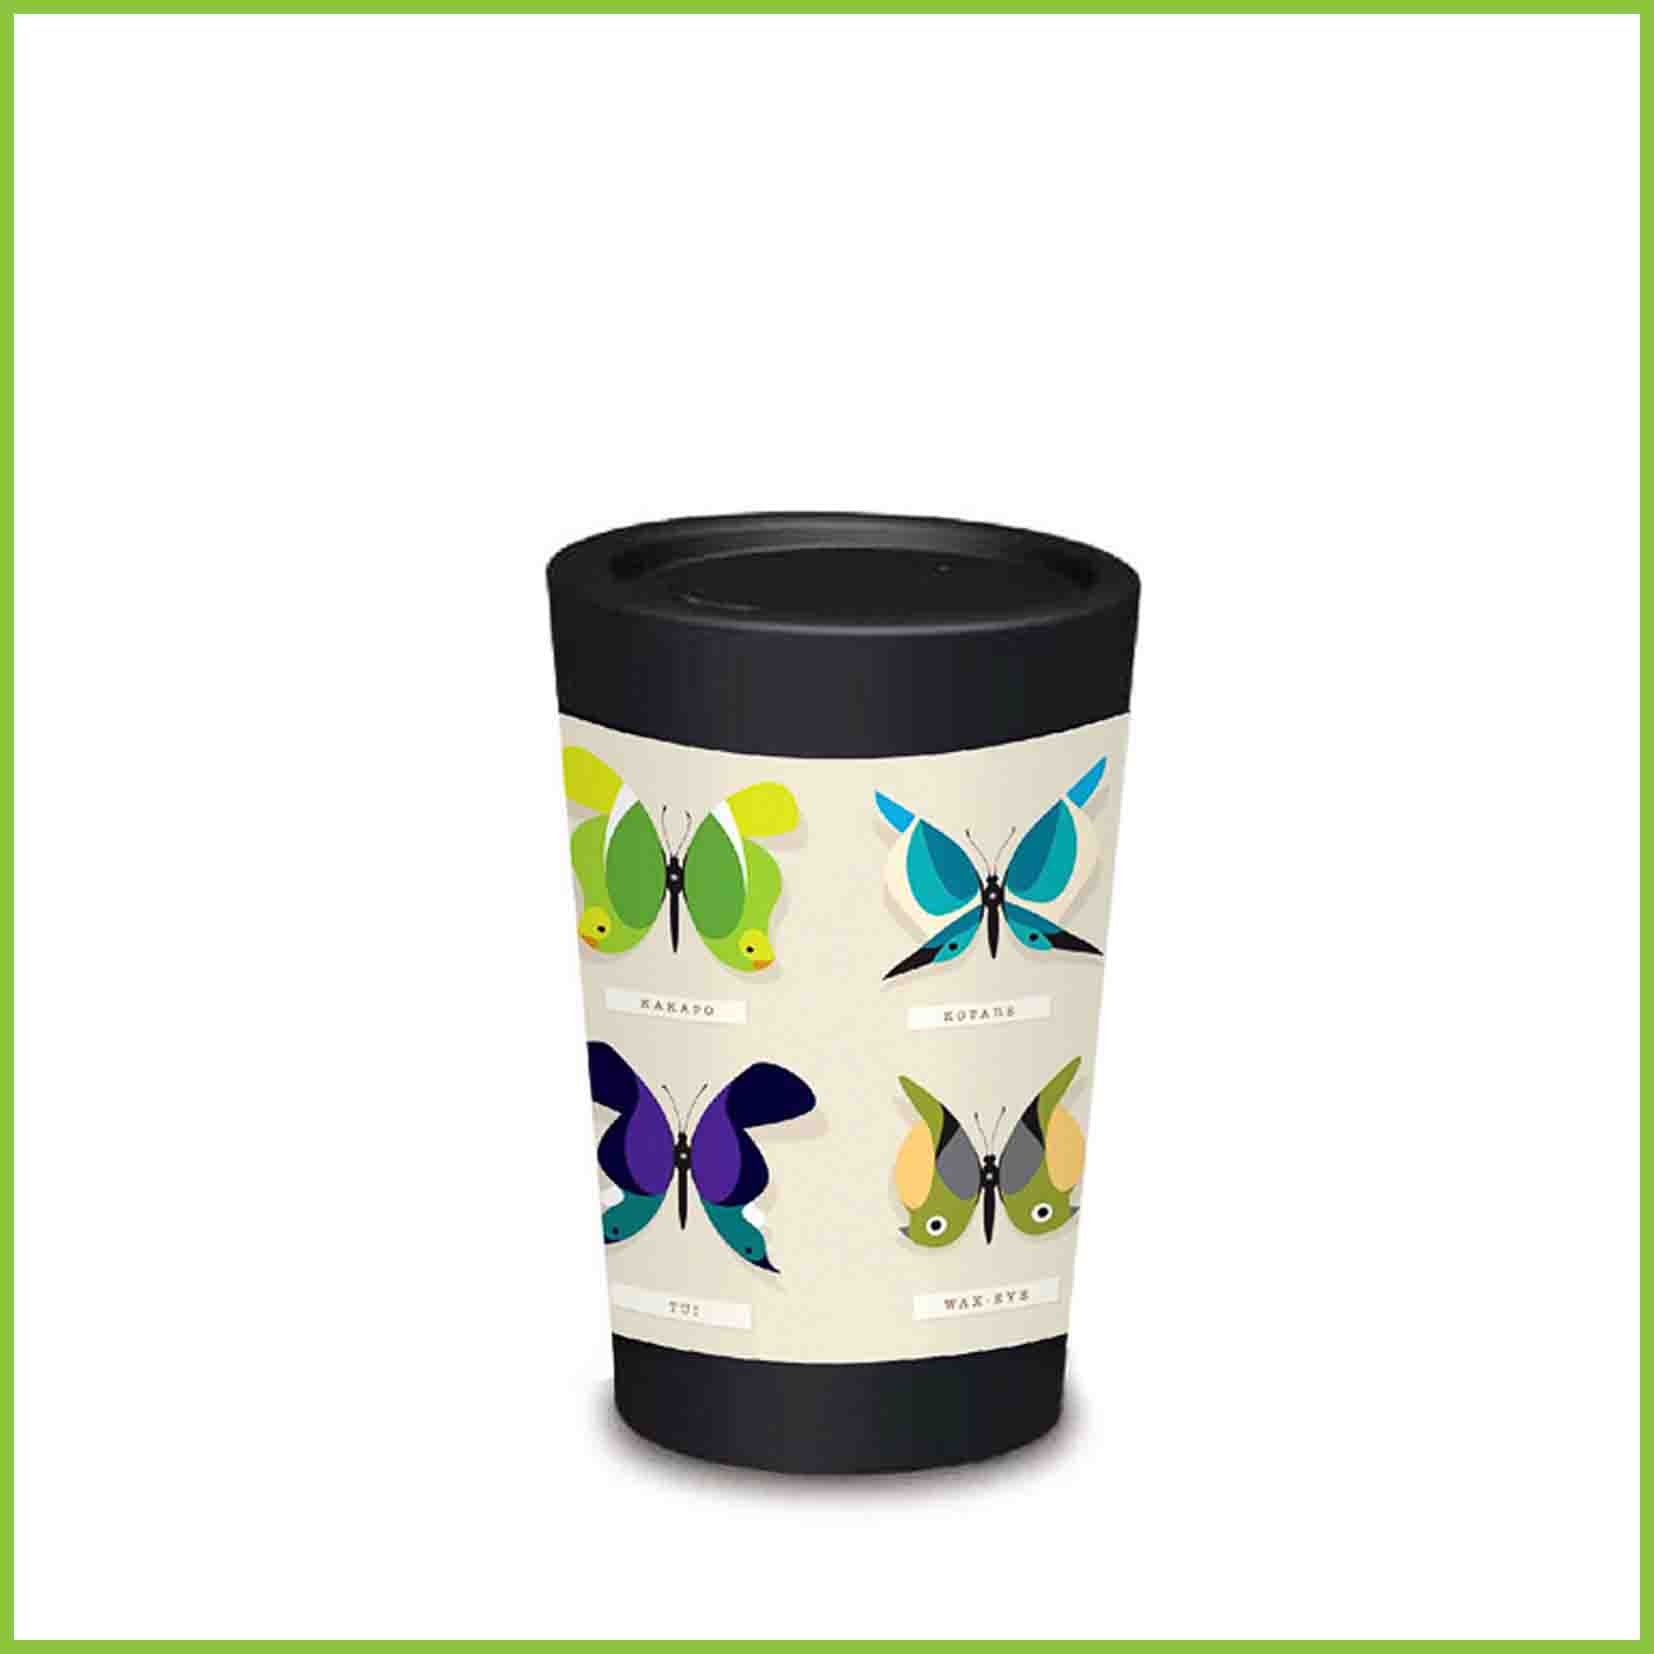 A lightweight reusable cup from CuppaCoffeeCup with a rare butterfly specimens design.